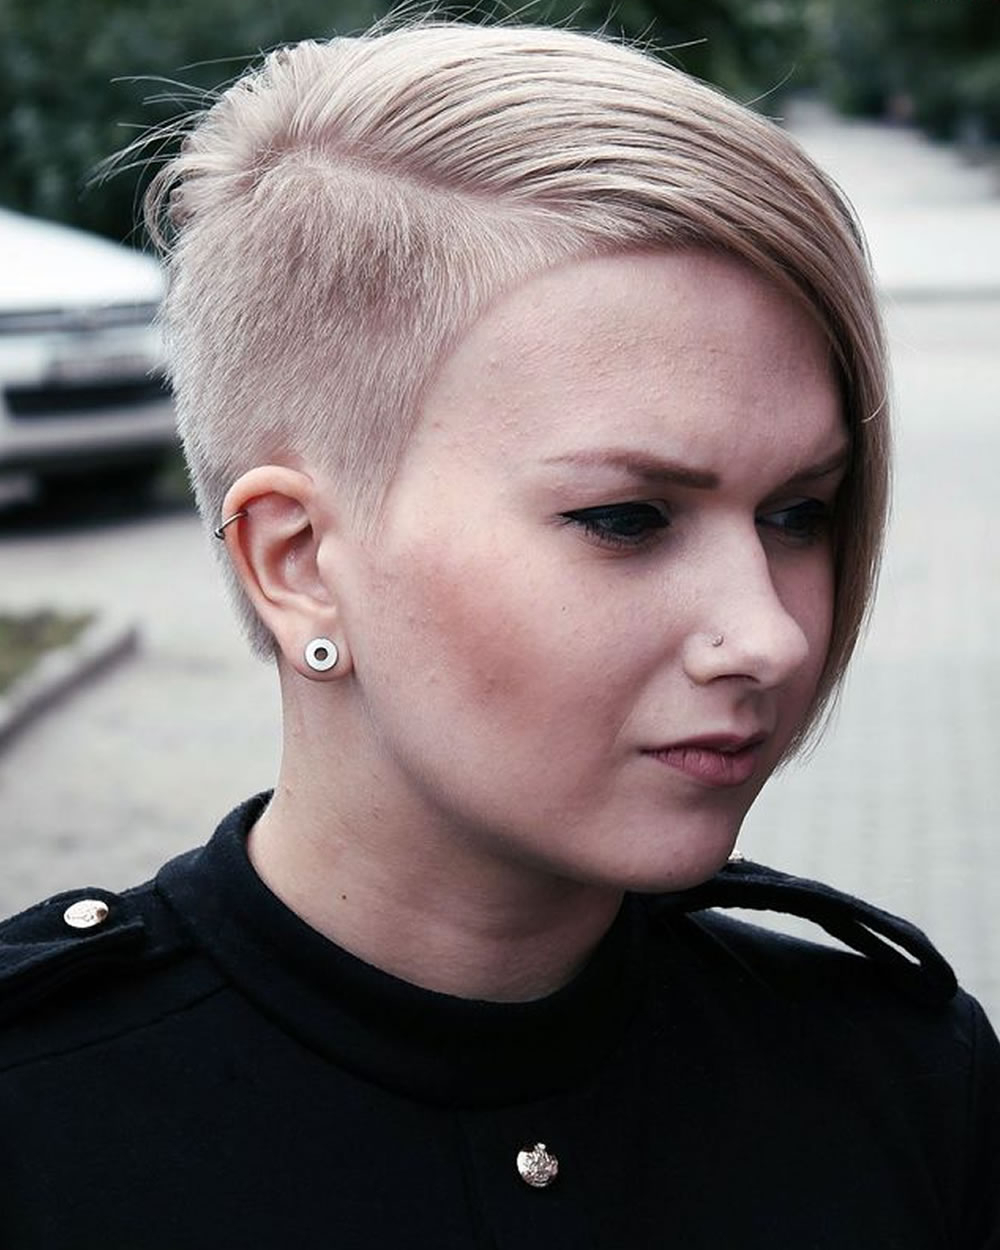 Feminine Extreme Short Haircuts For Ladies 2018 2019 – Hairstyles With Regard To Feminine Short Haircuts (View 9 of 25)